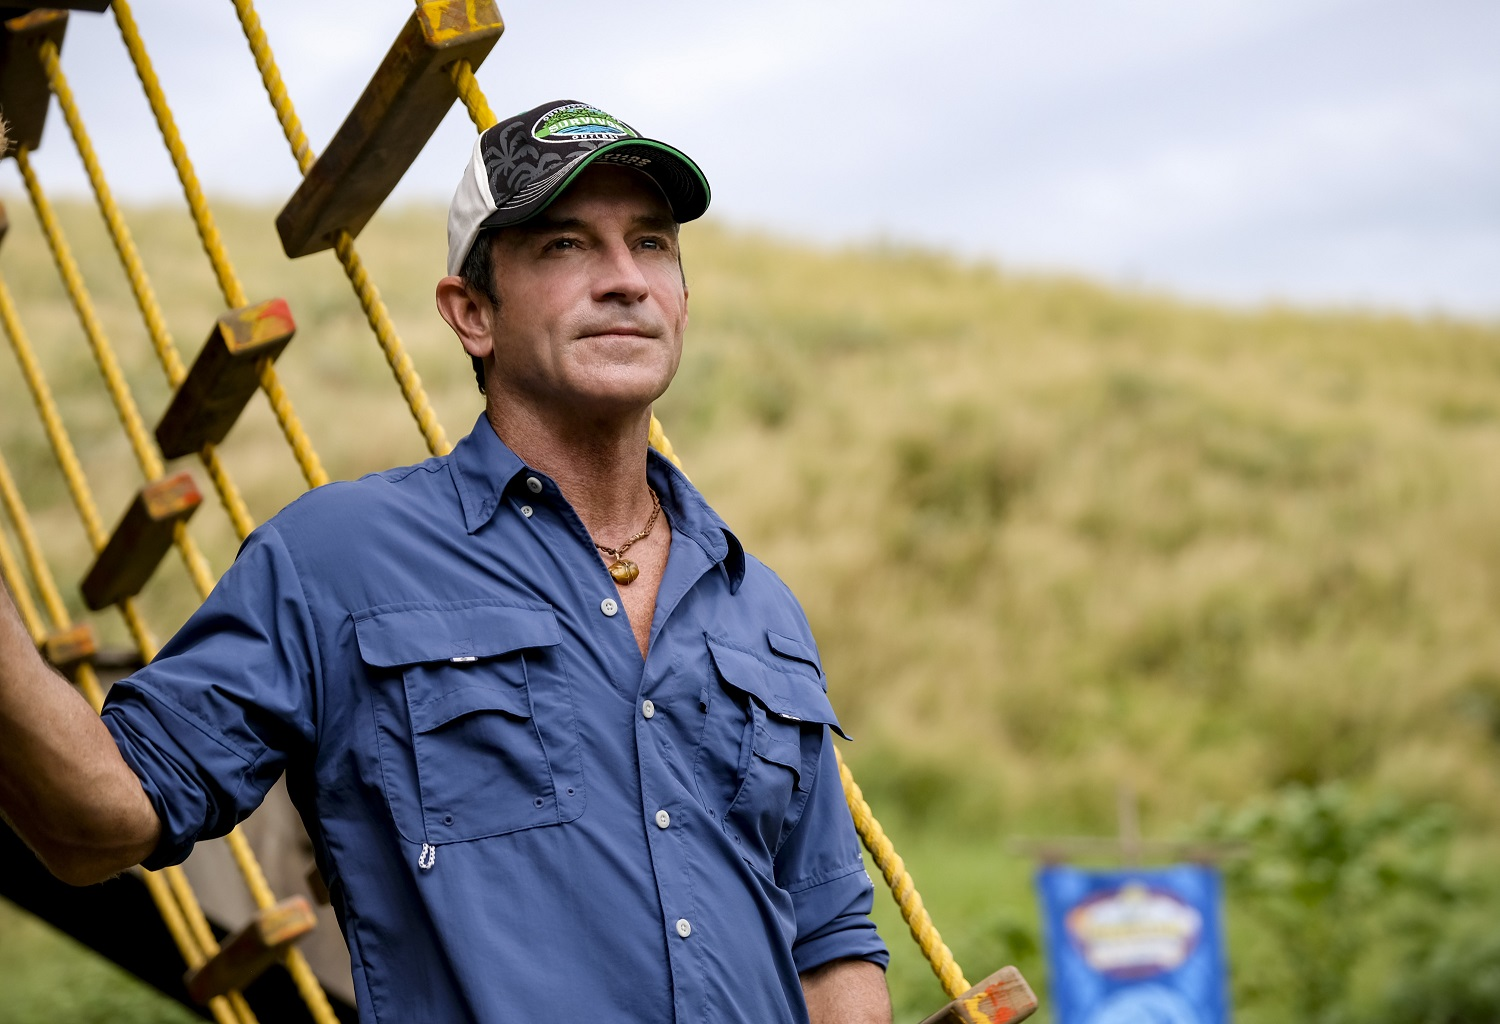 'Survivor 41': Jeff Probst Dishes On New Rebus Puzzles